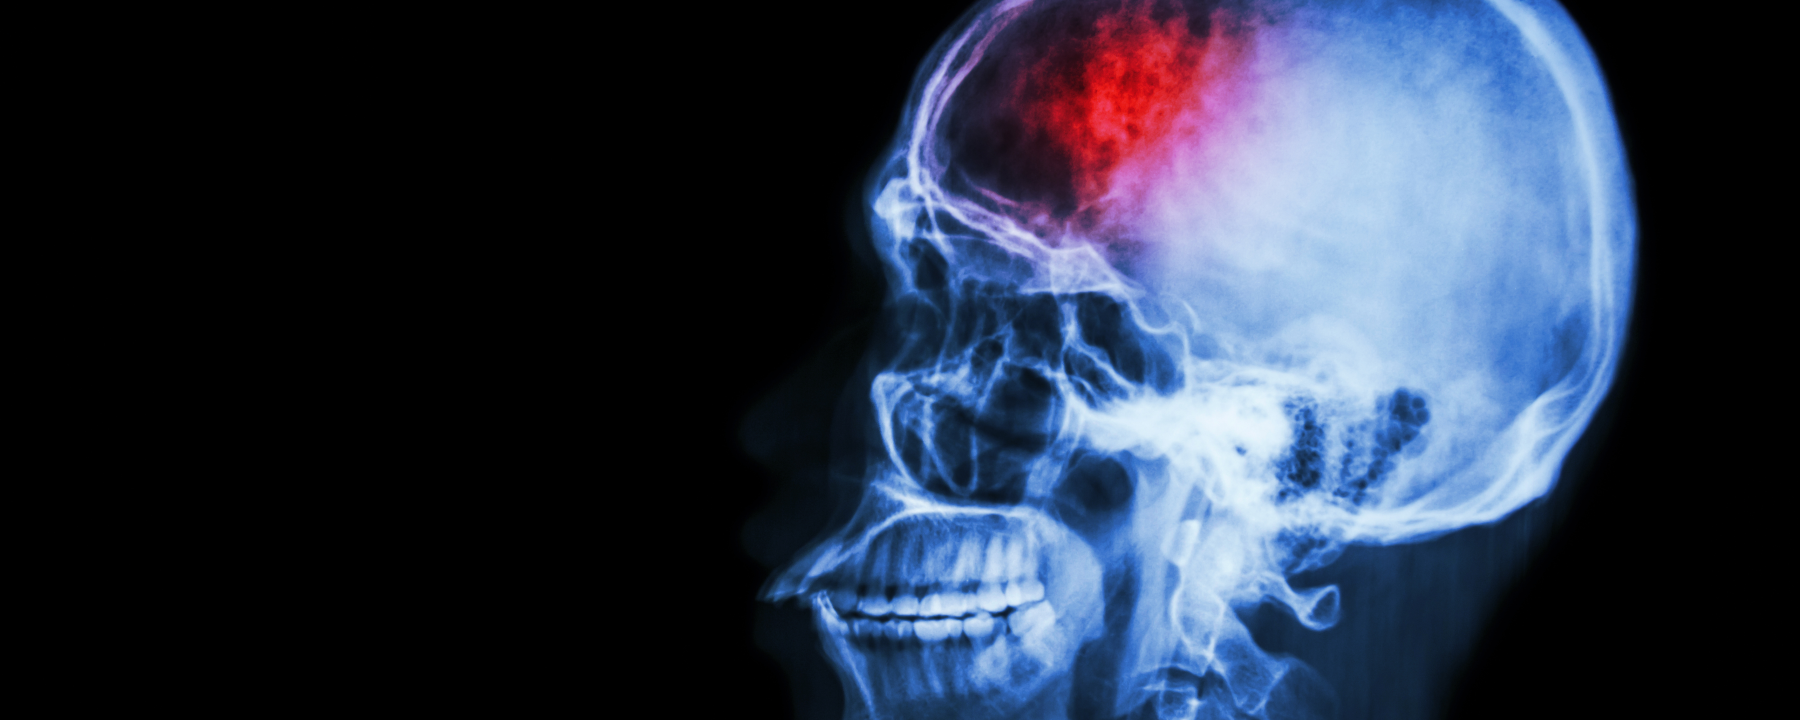 Dozens More Cases of Neurological Problems in COVID-19 Reported